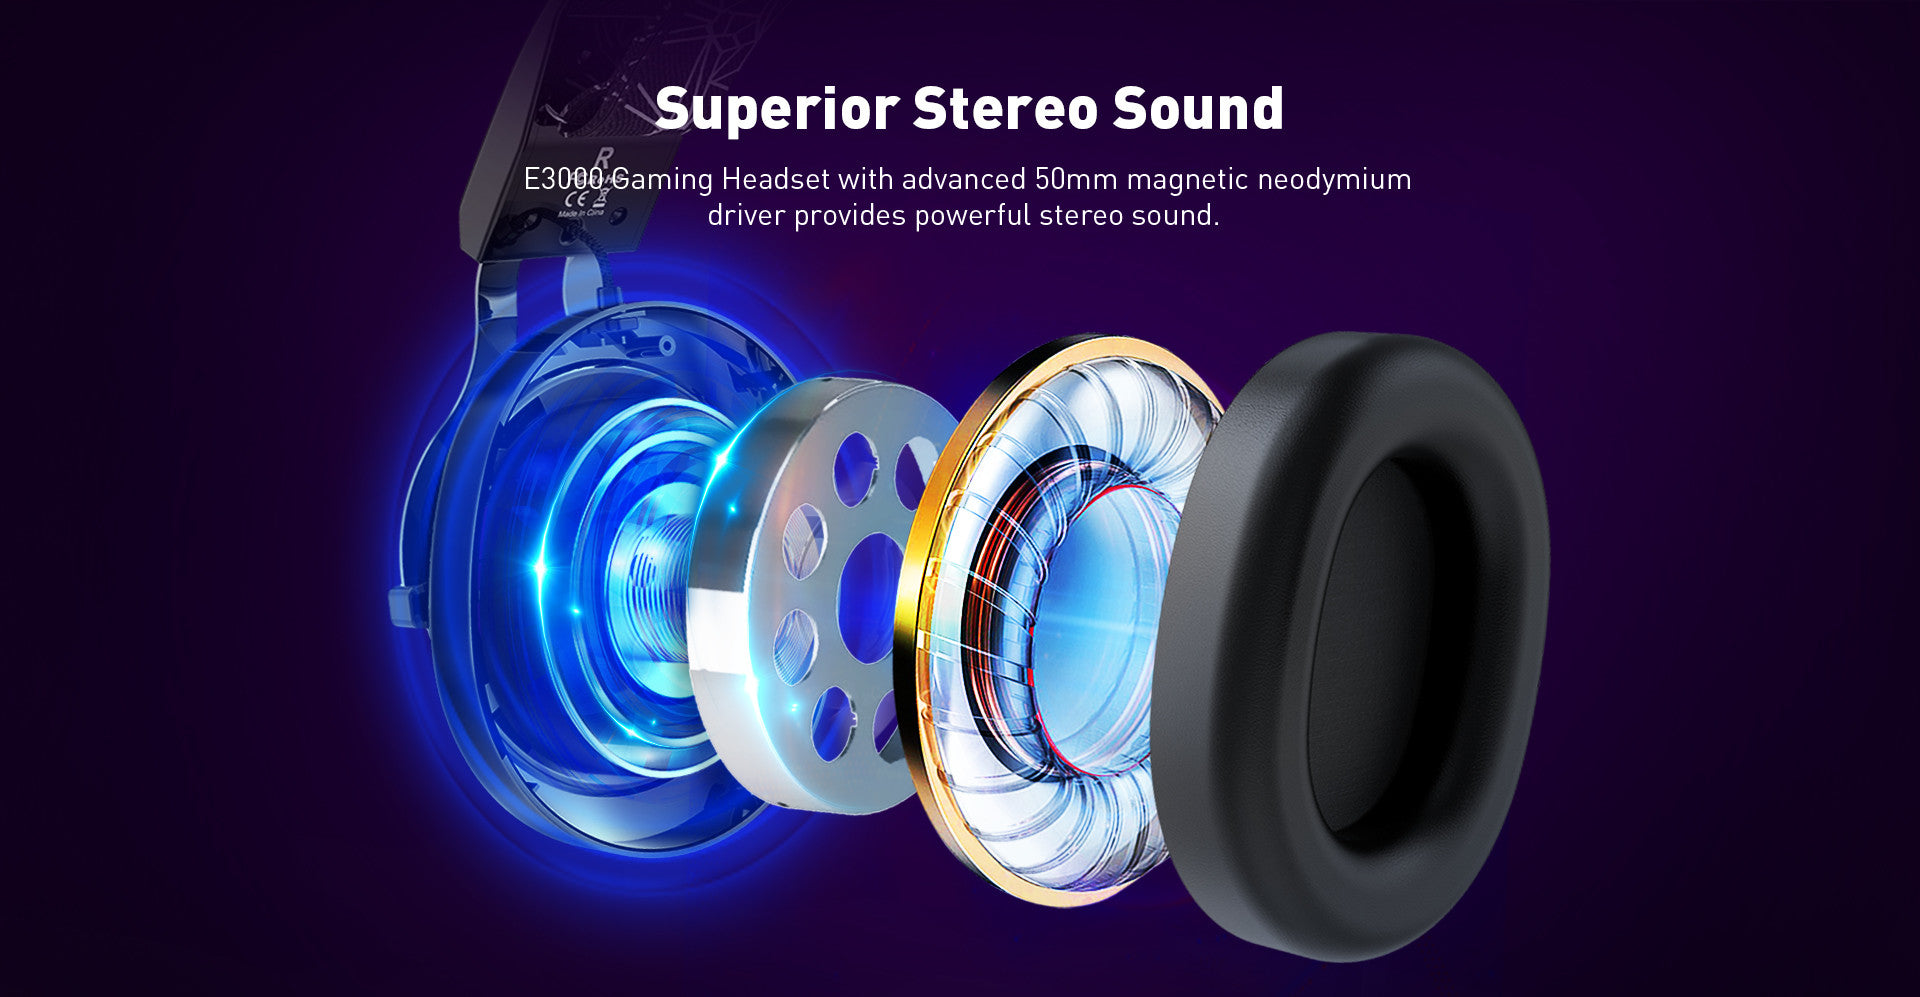 E3000 Gaming Headset with advanced 50mm magnetic neodymium driver provides powerful stereo sound.